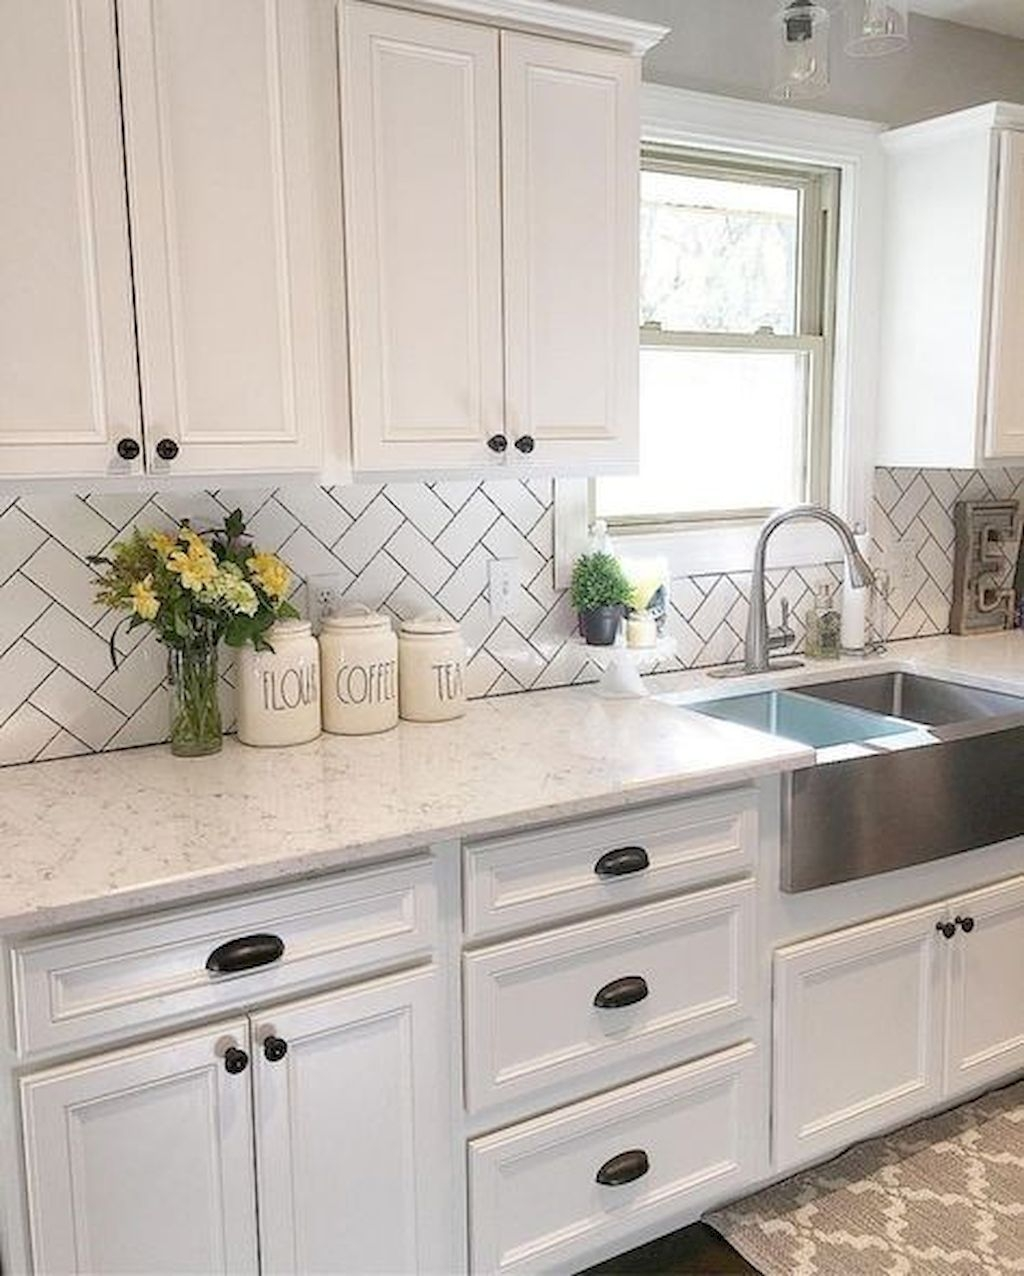 Gorgeus Farmhouse Kitchen Sink Design Ideas 29